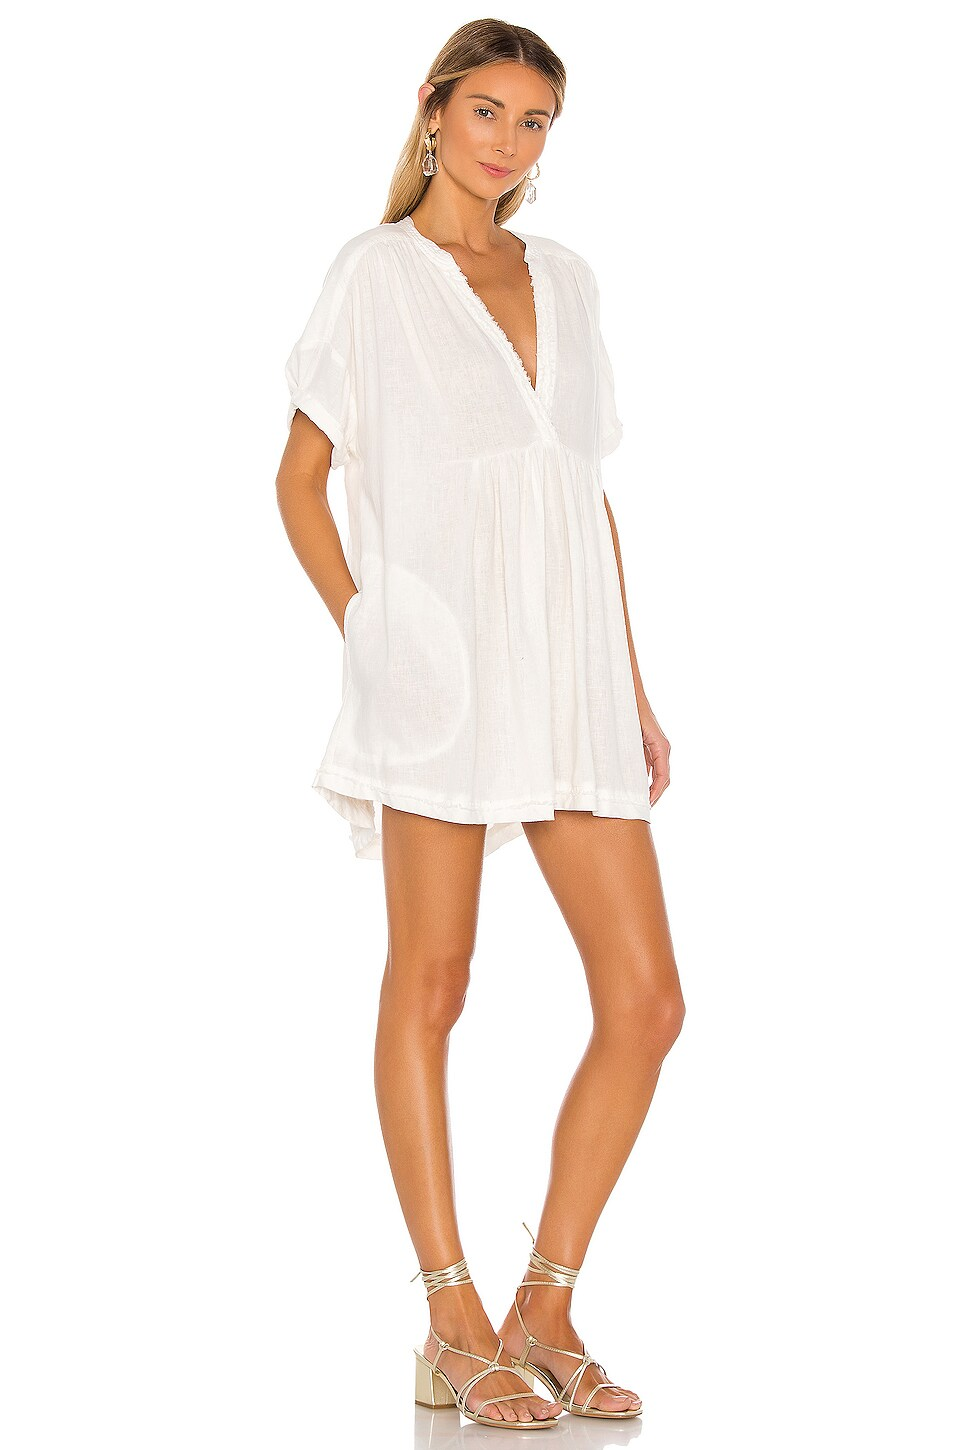 Getaway With Me Tunic, view 2, click to view large image.